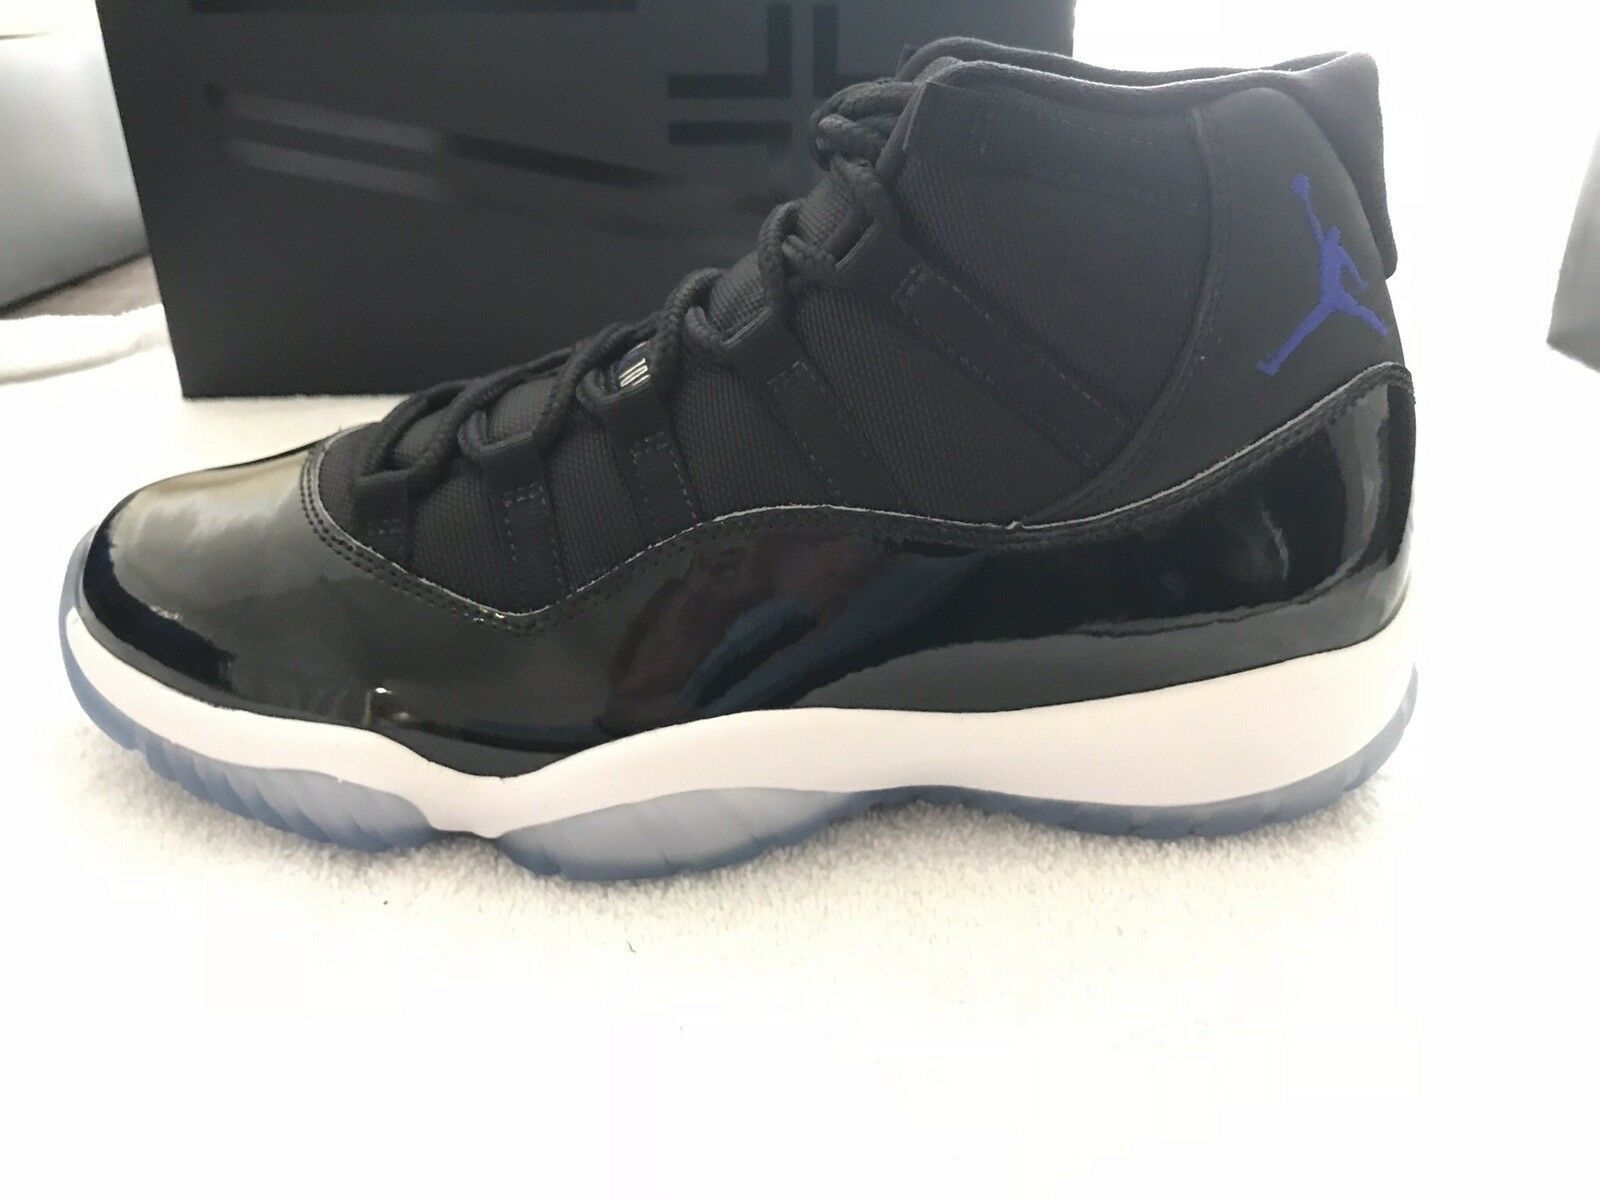 2016 Nike Air Jordan Retro XI 11 -  Space Jam   - Size 10